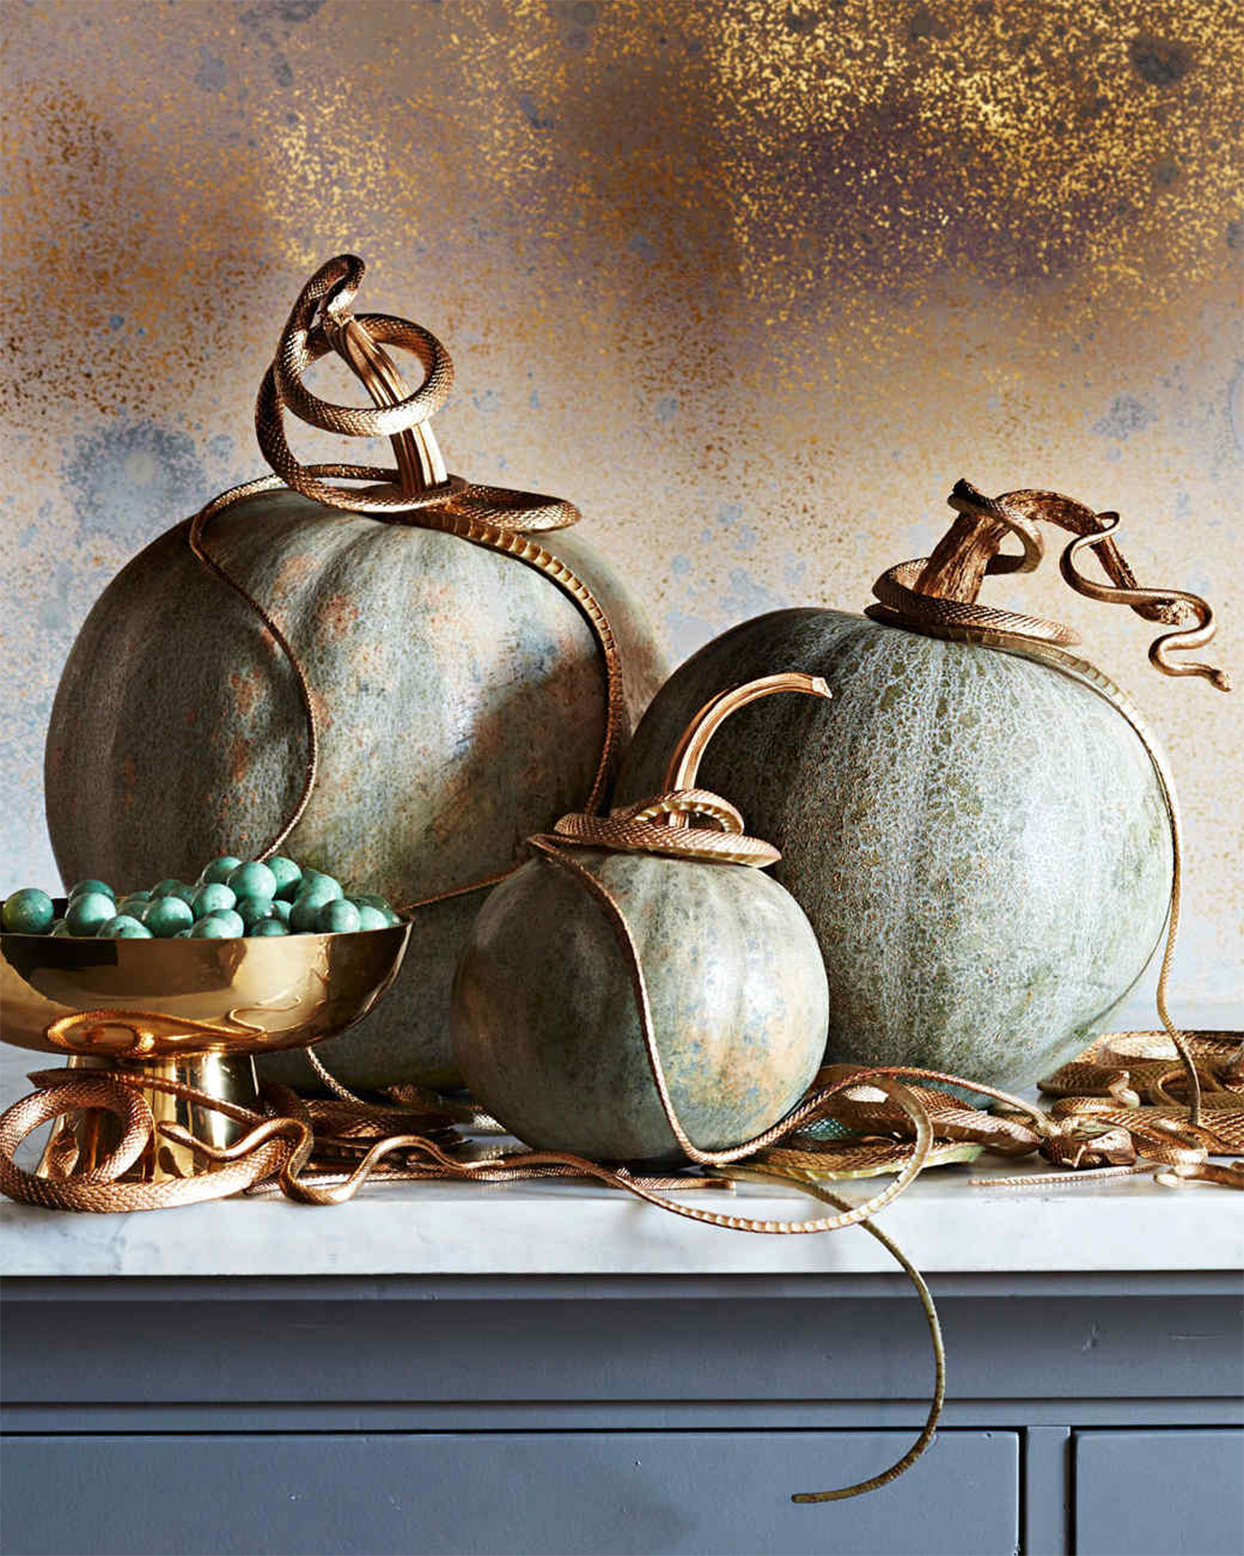 Snake-Infested Pumpkins